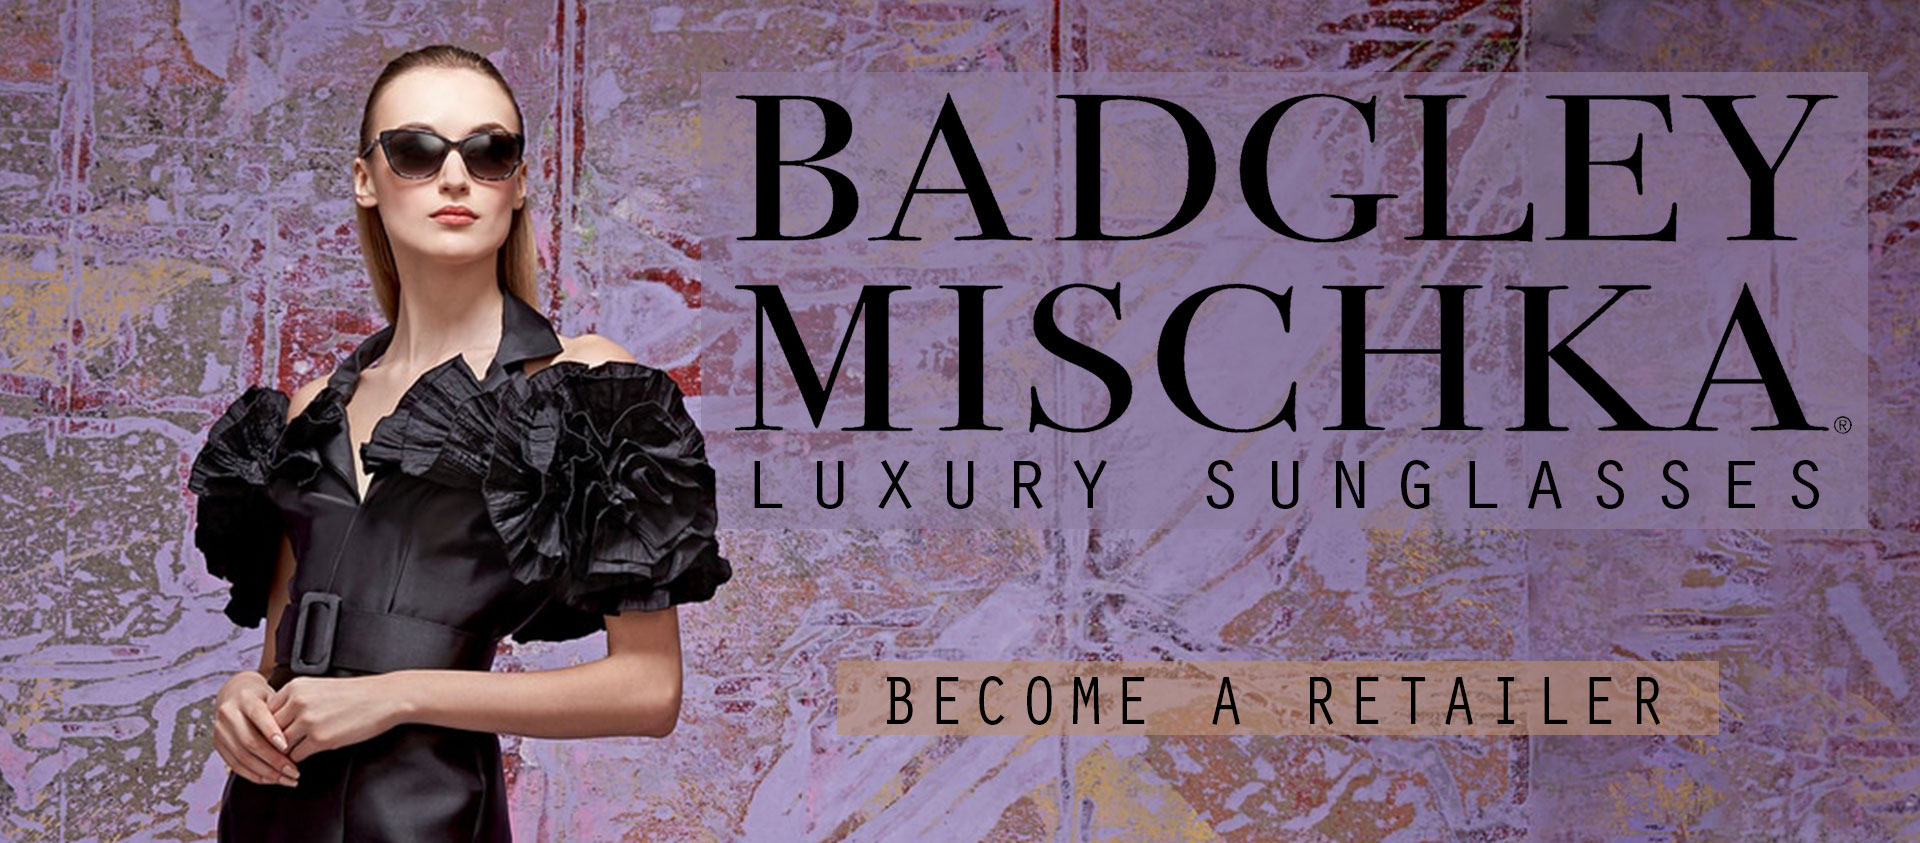 Badgley Mischka Accessories